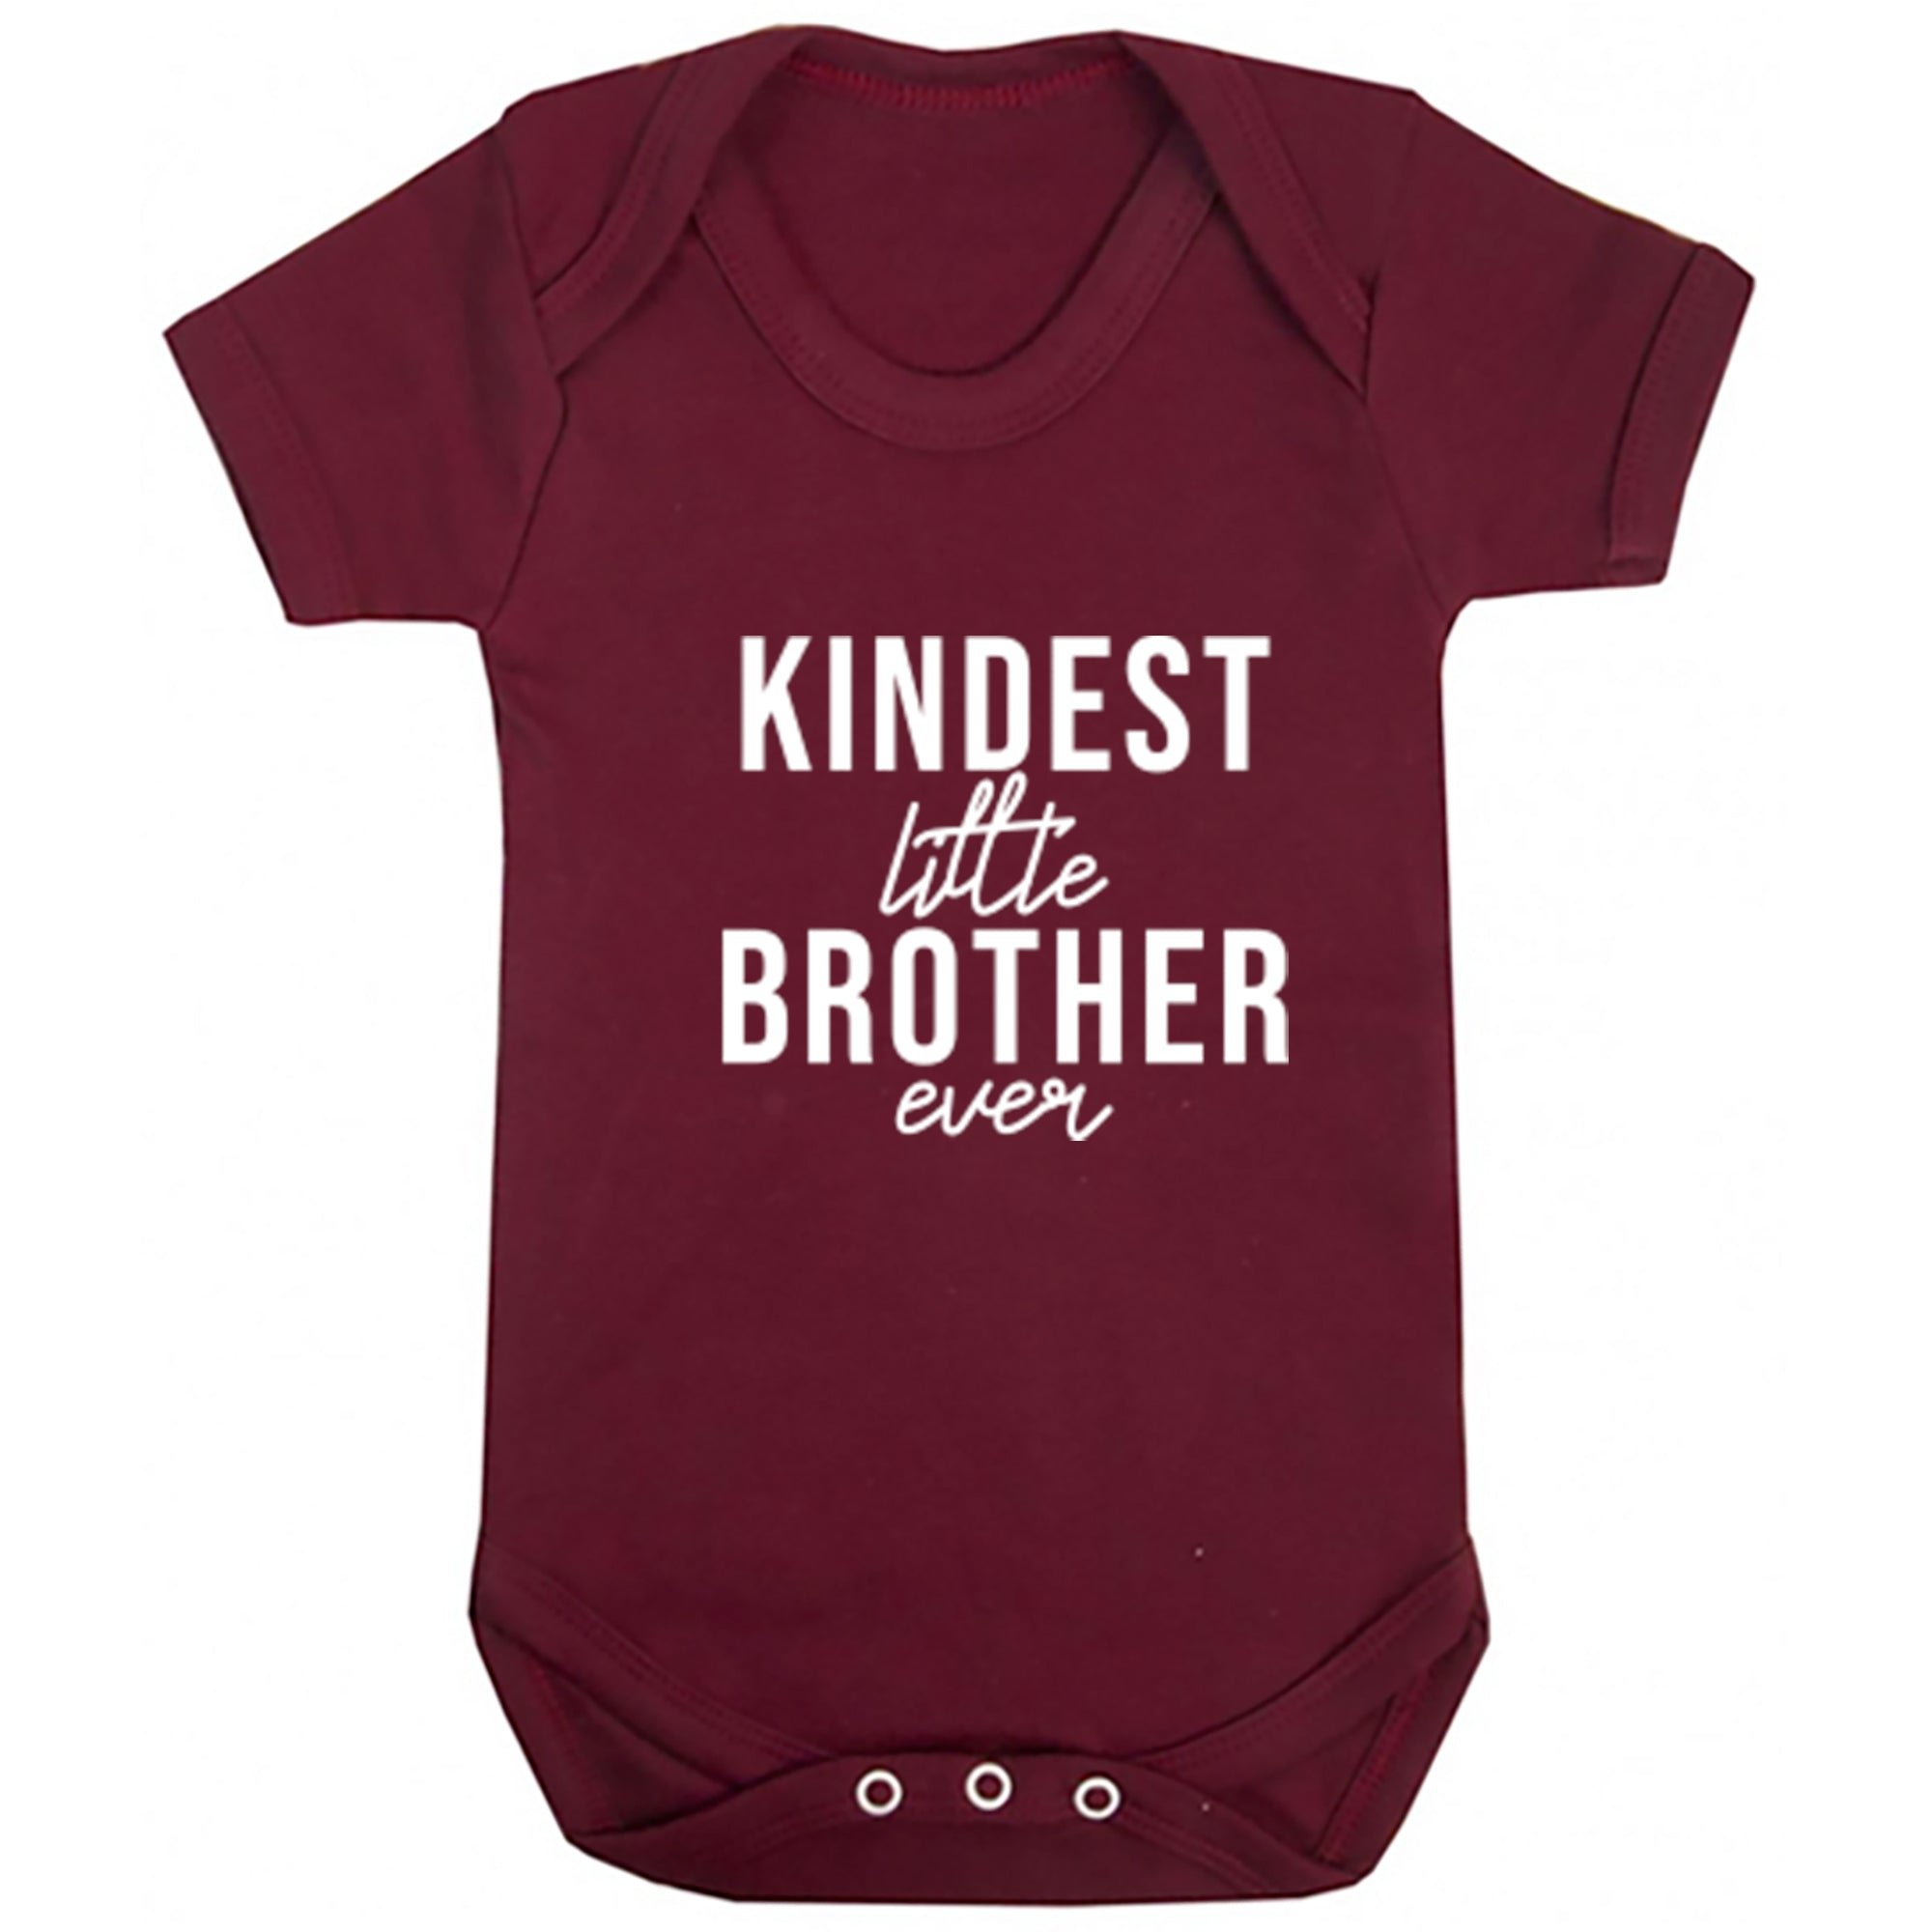 Kindest Little Brother Ever Baby Vest S0519 - Illustrated Identity Ltd.